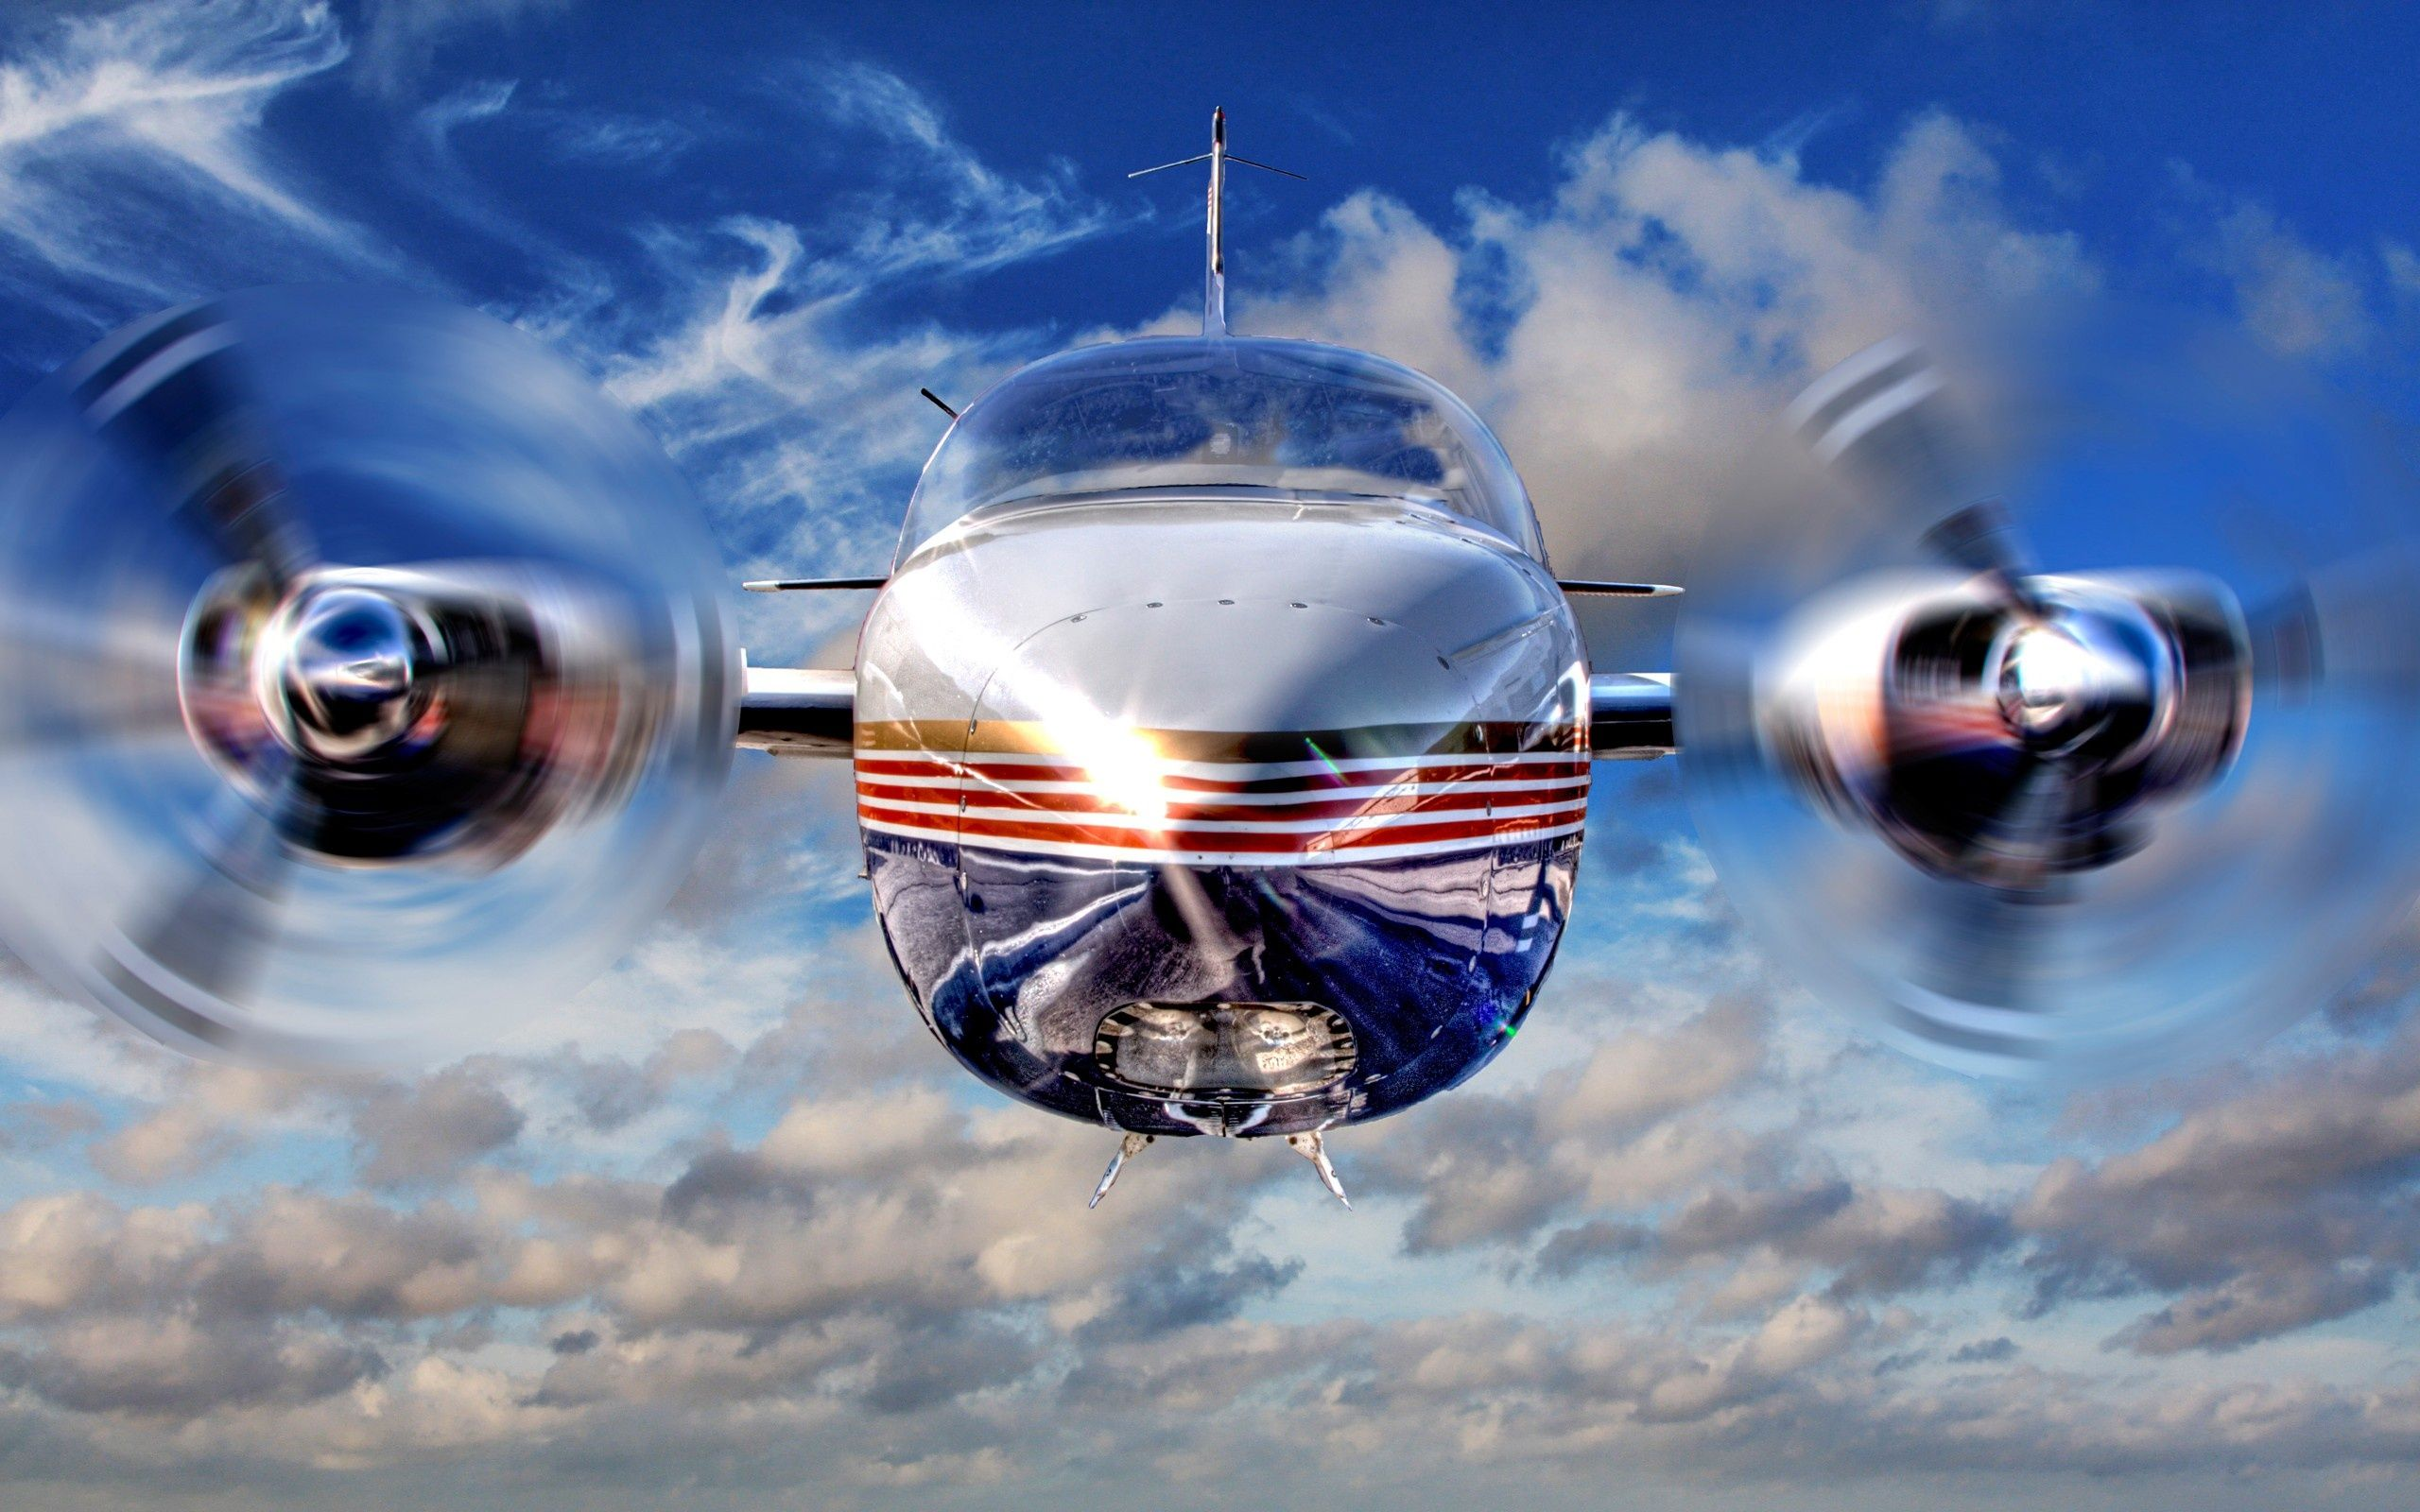 Wide World Propeller Jet Airplane Wallpapers Pictures Photos